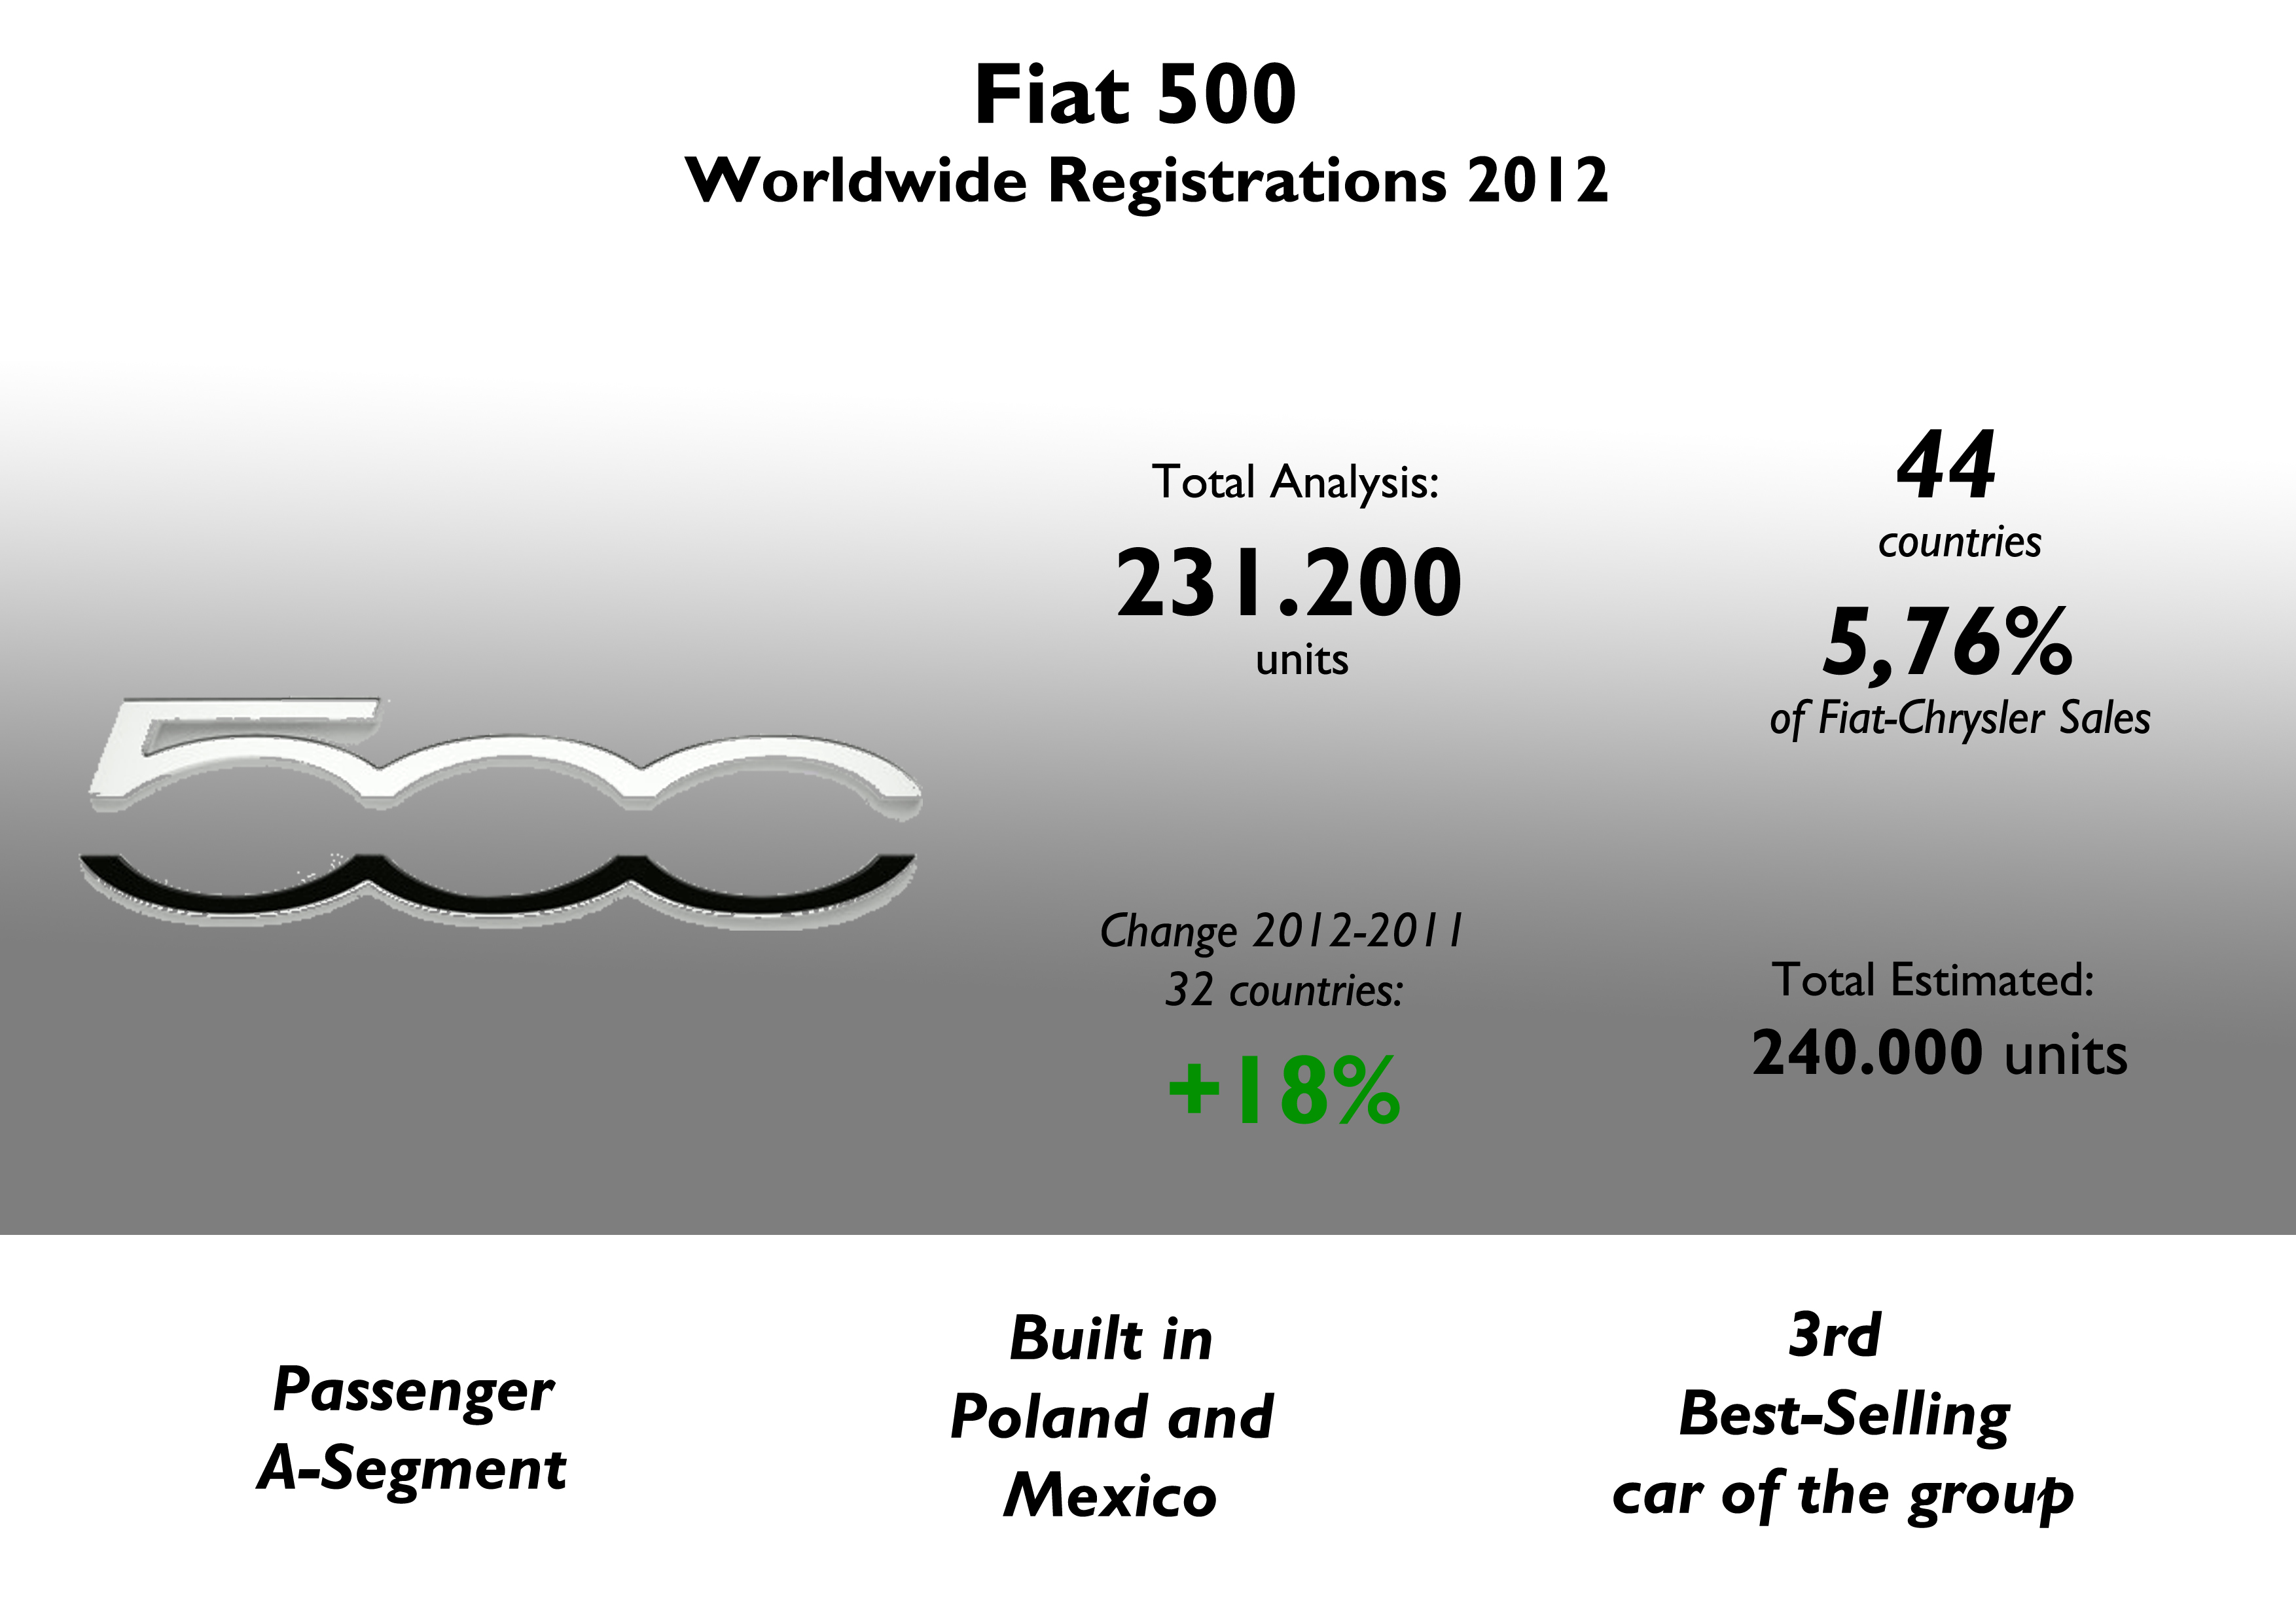 The 500 was fiat chrysler 3rd best selling car in 2012 i could